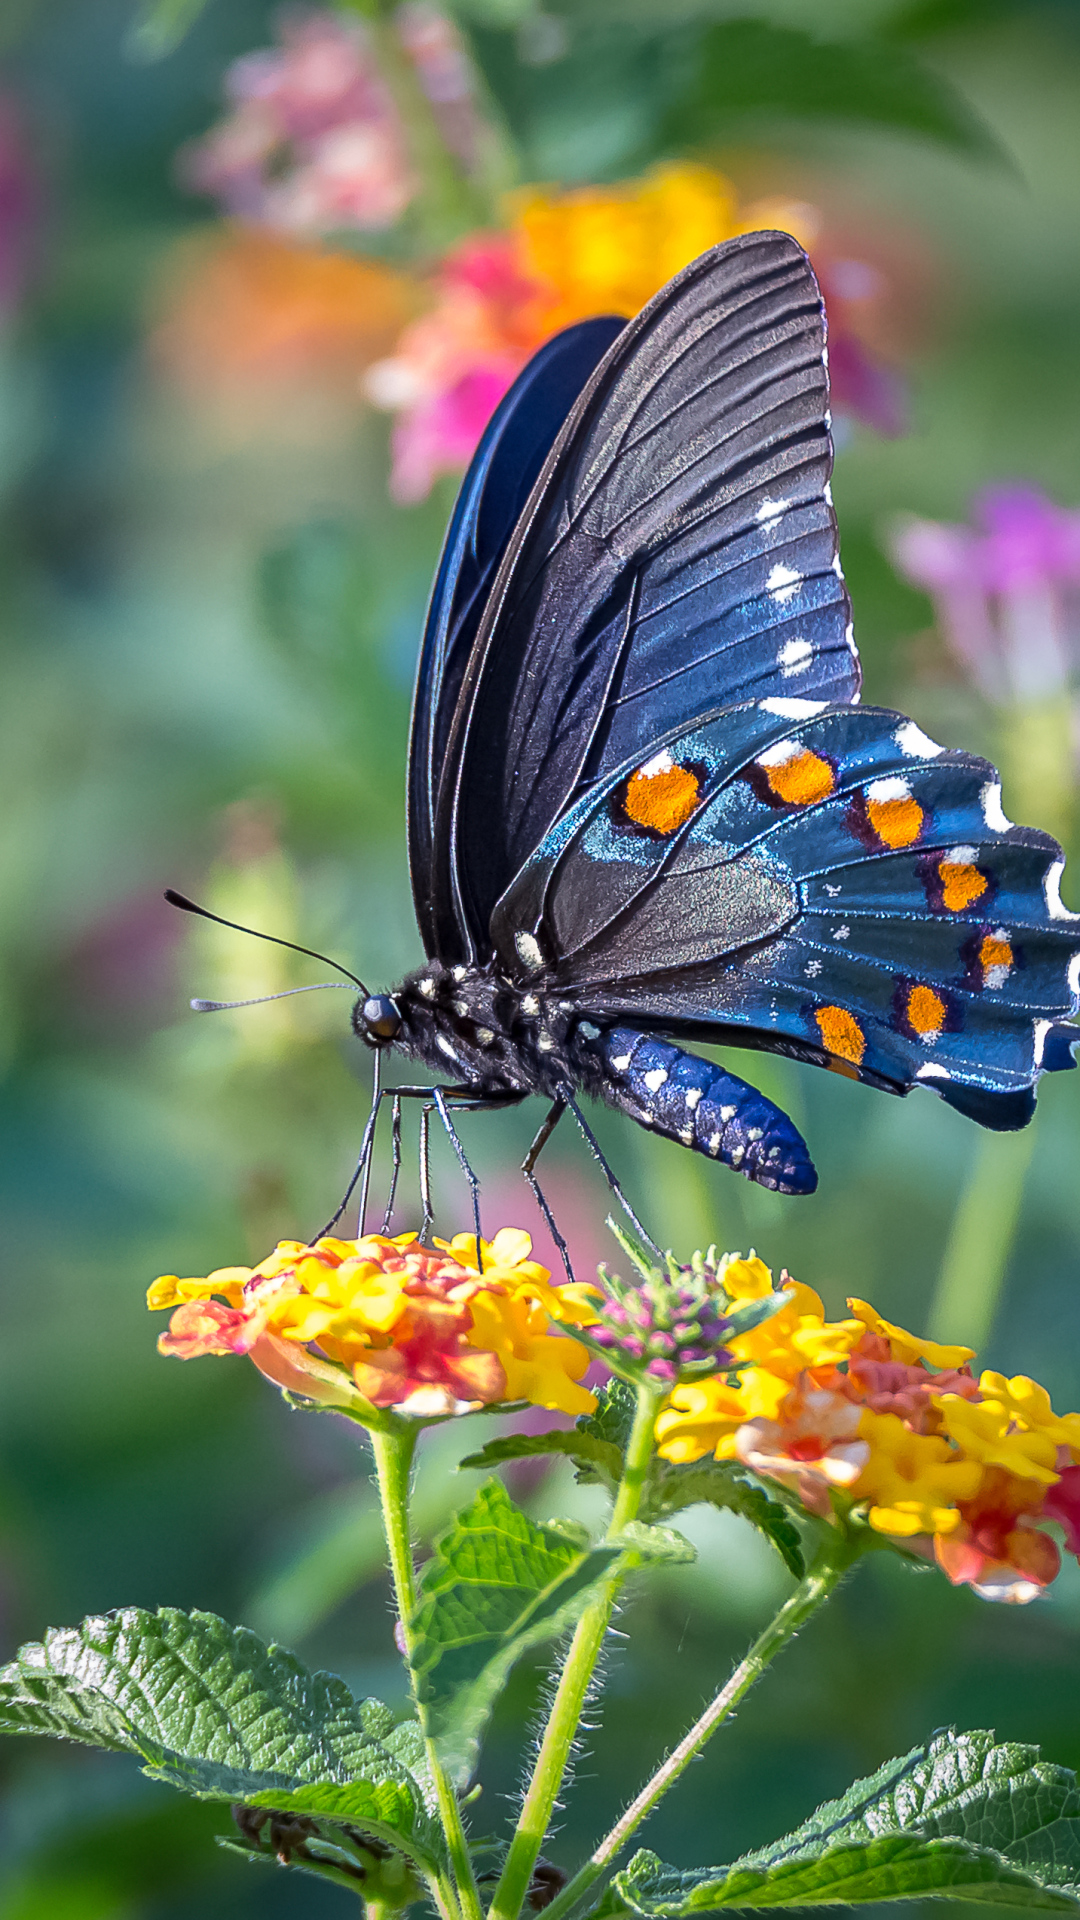 Butterfly Wallpaper For Mobile Phone , HD Wallpaper & Backgrounds